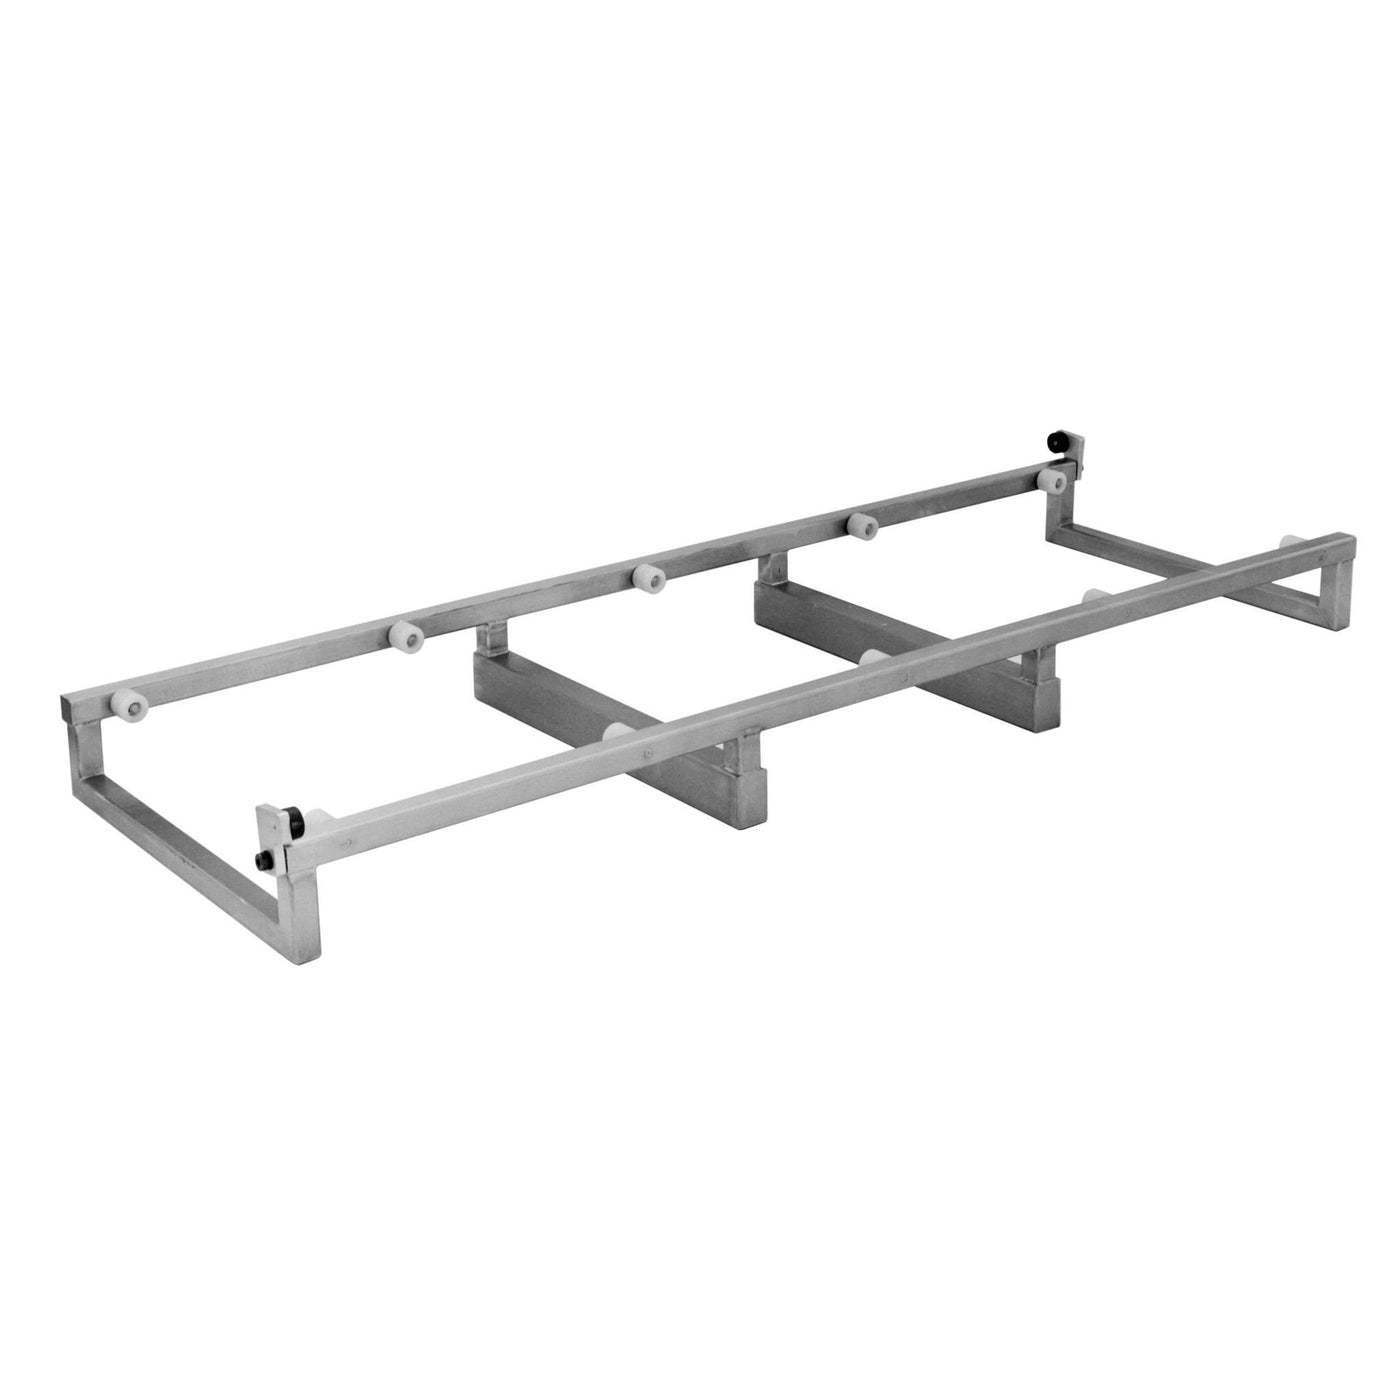 Roller Pallet Assemblies-Cadaver Handling & Storage Systems-Mortech Manufacturing Company Inc. Quality Stainless Steel Autopsy, Morgue, Funeral Home, Necropsy, Veterinary / Anatomy, Dissection Equipment and Accessories